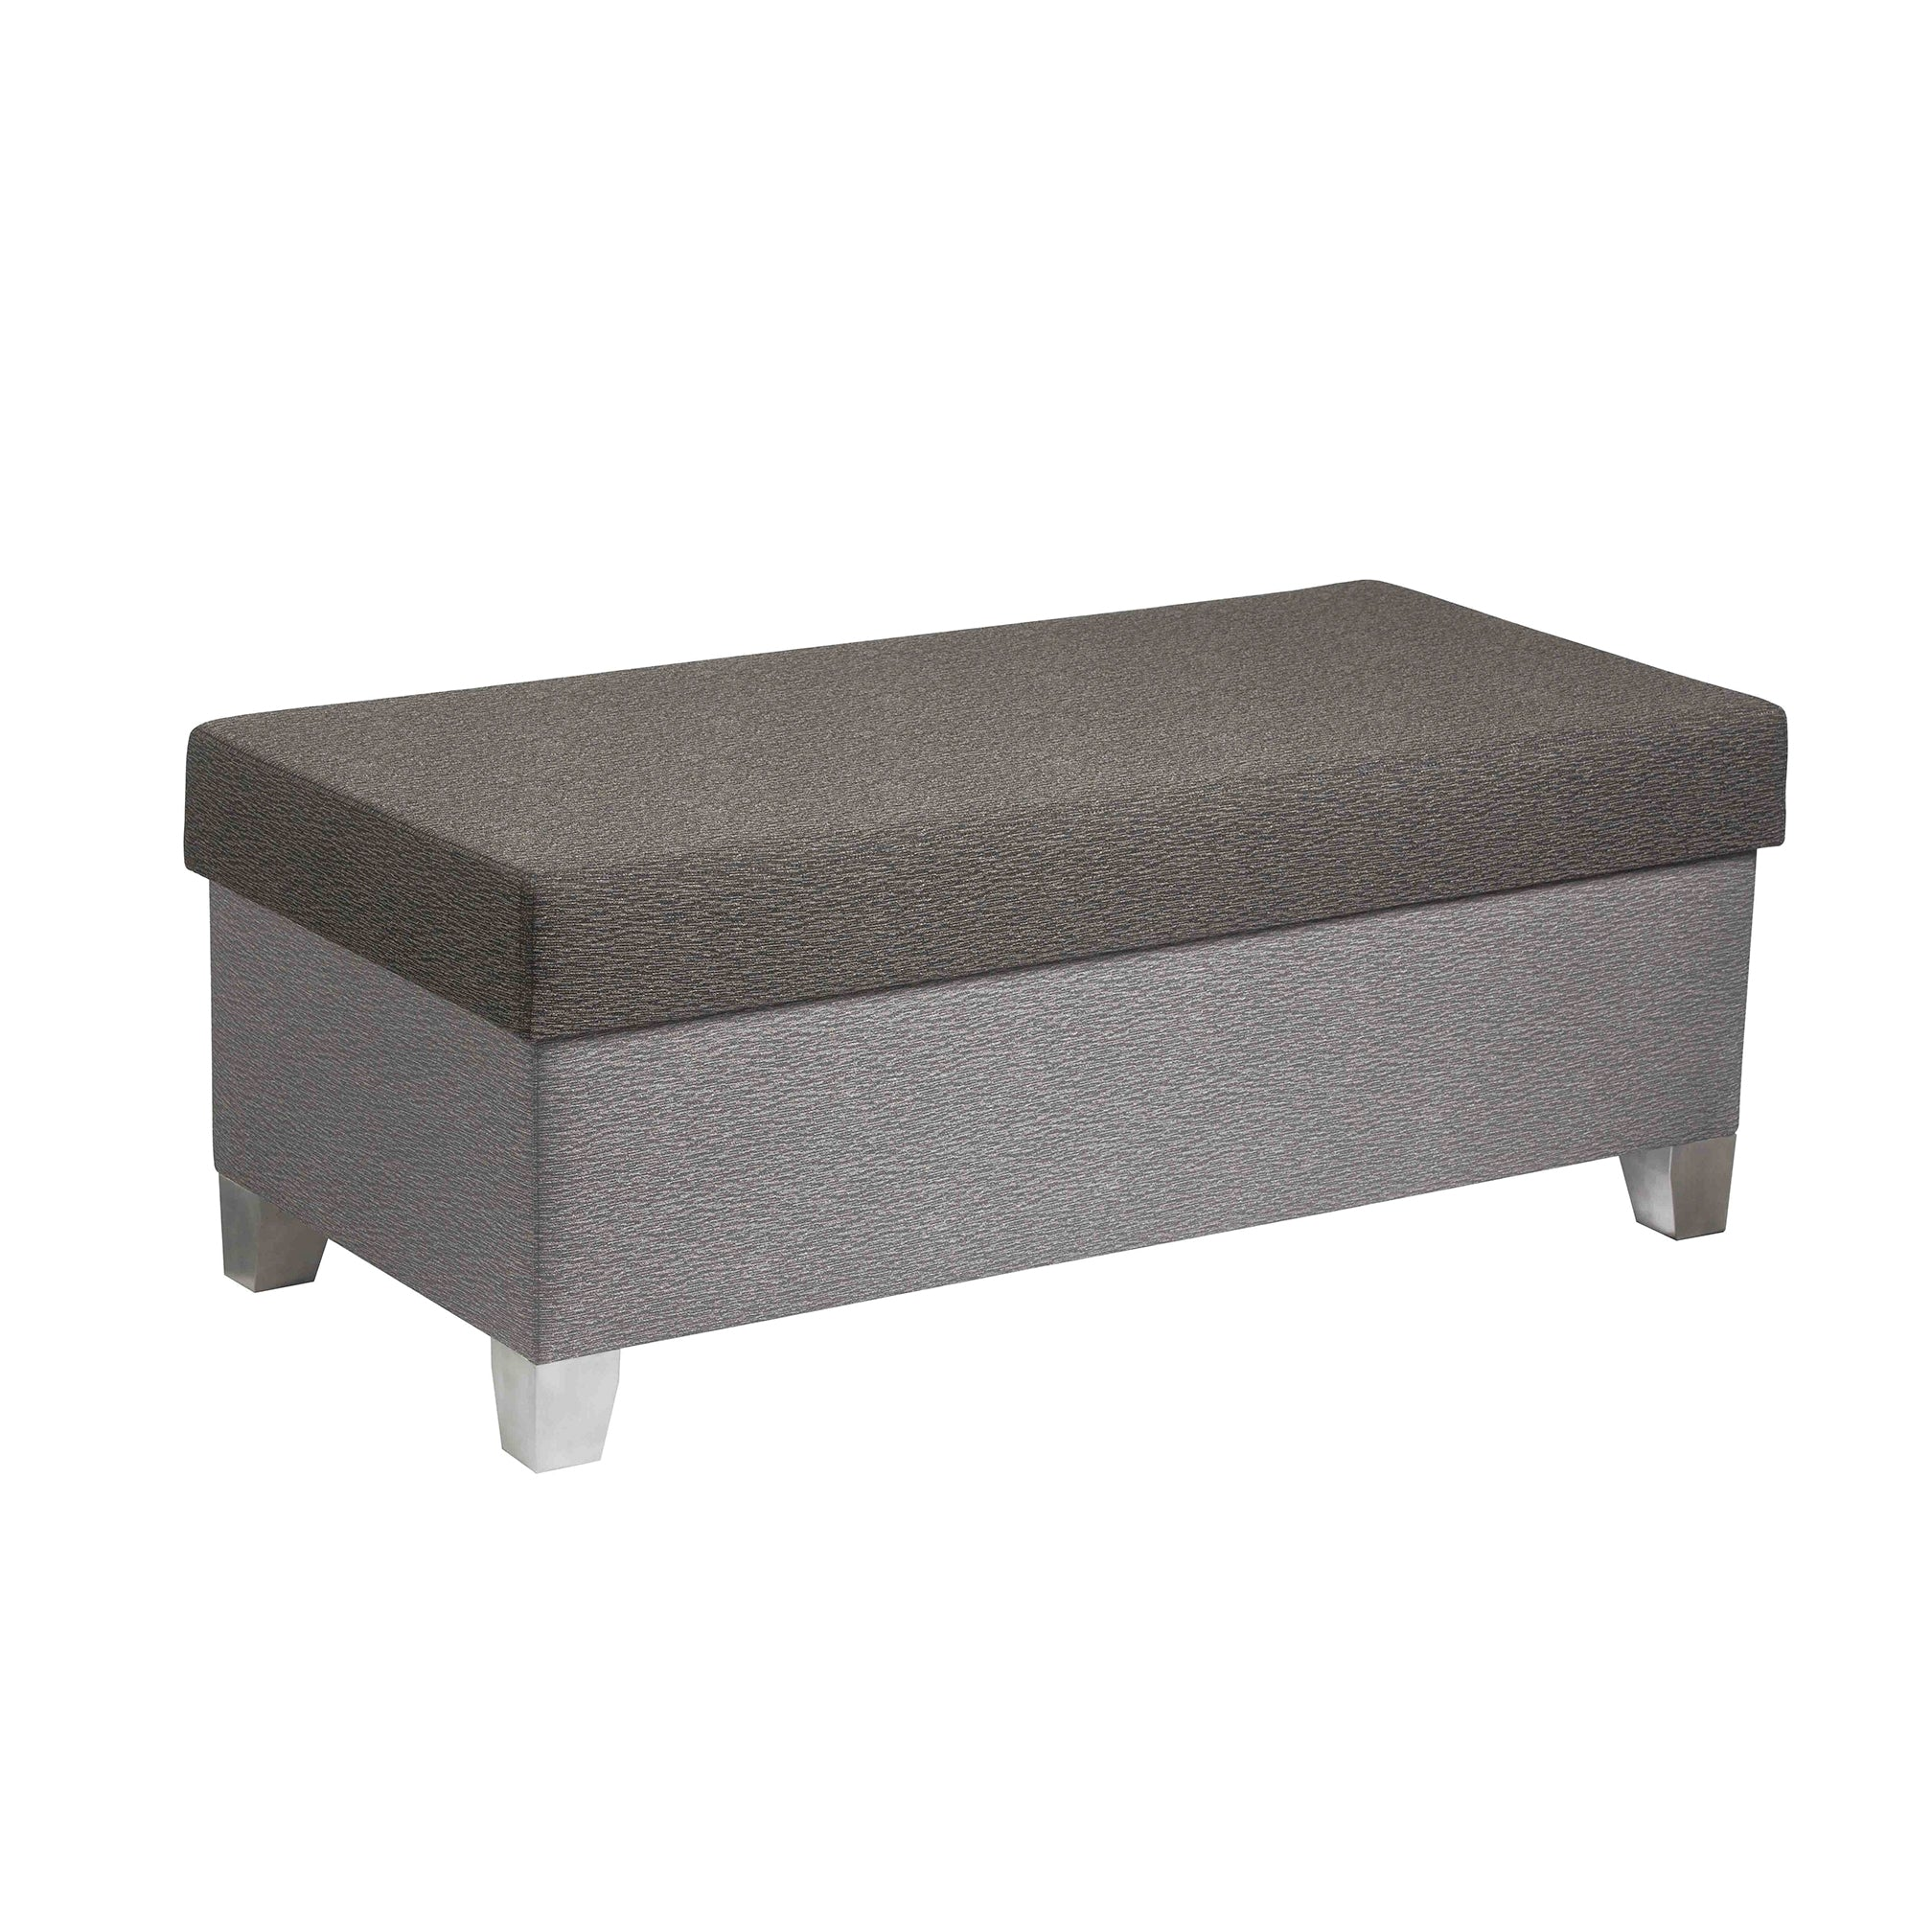 Trullo Double Bench